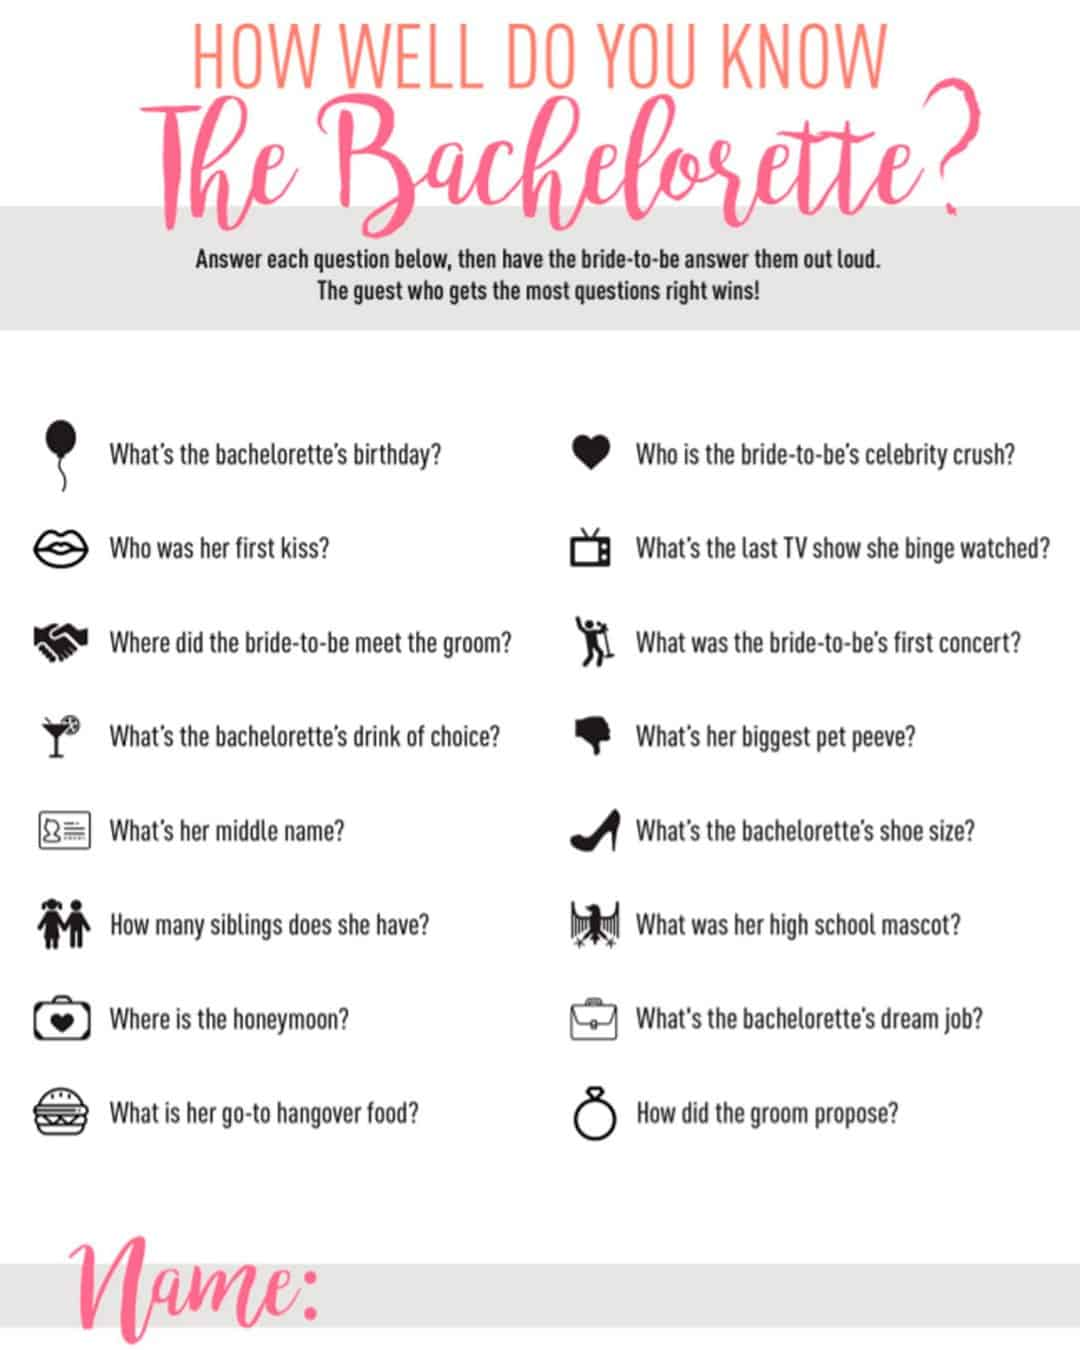 How Well Do You Know The Bachelorette- Diy Section